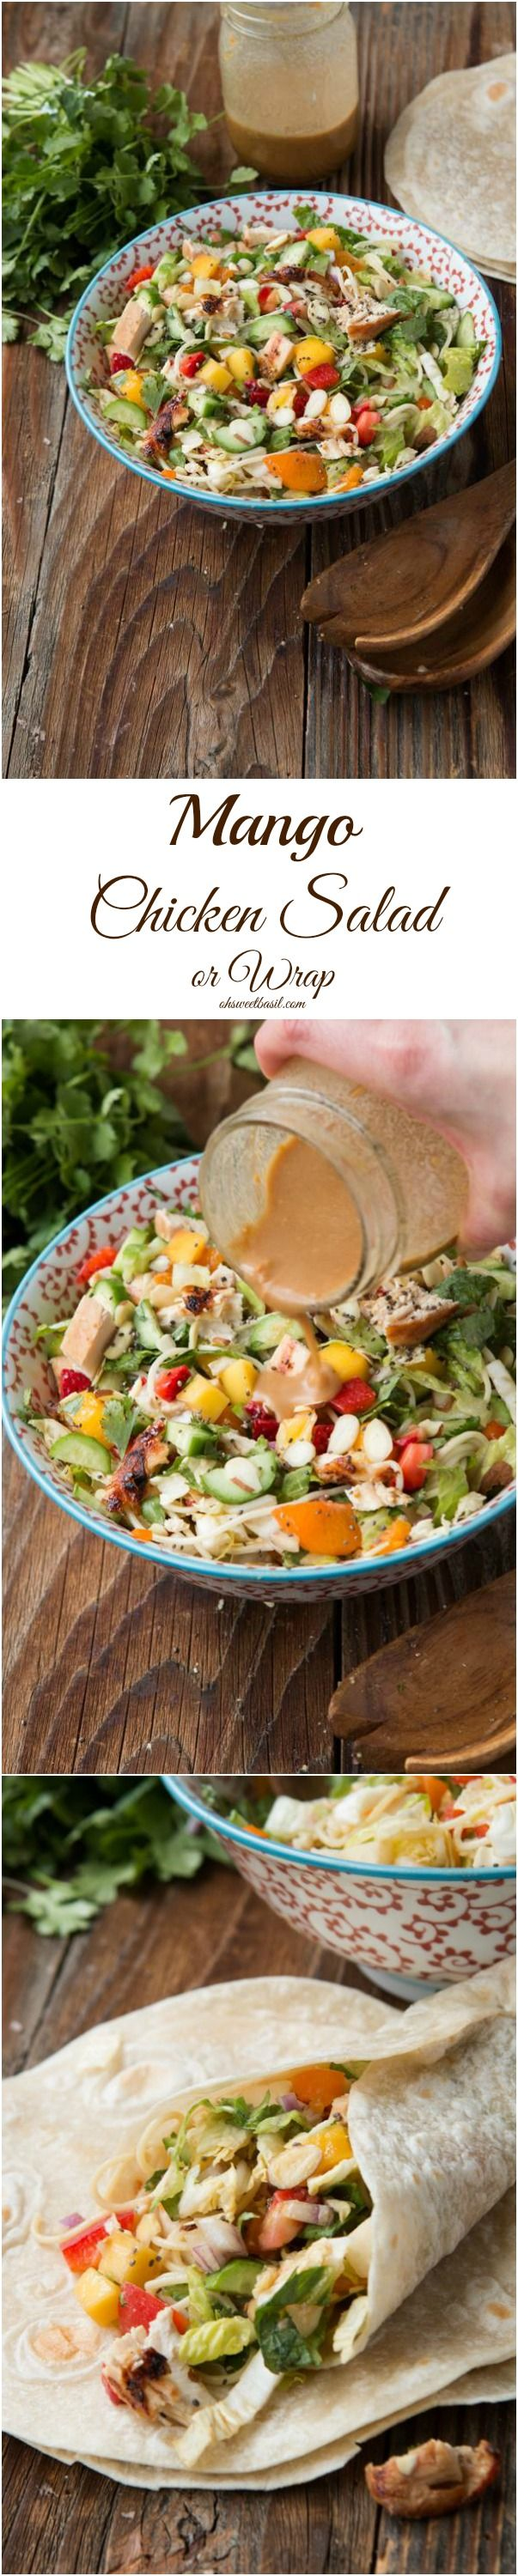 Mango chicken salad or even a wrap that the whole family loves! ohsweetbasil.com